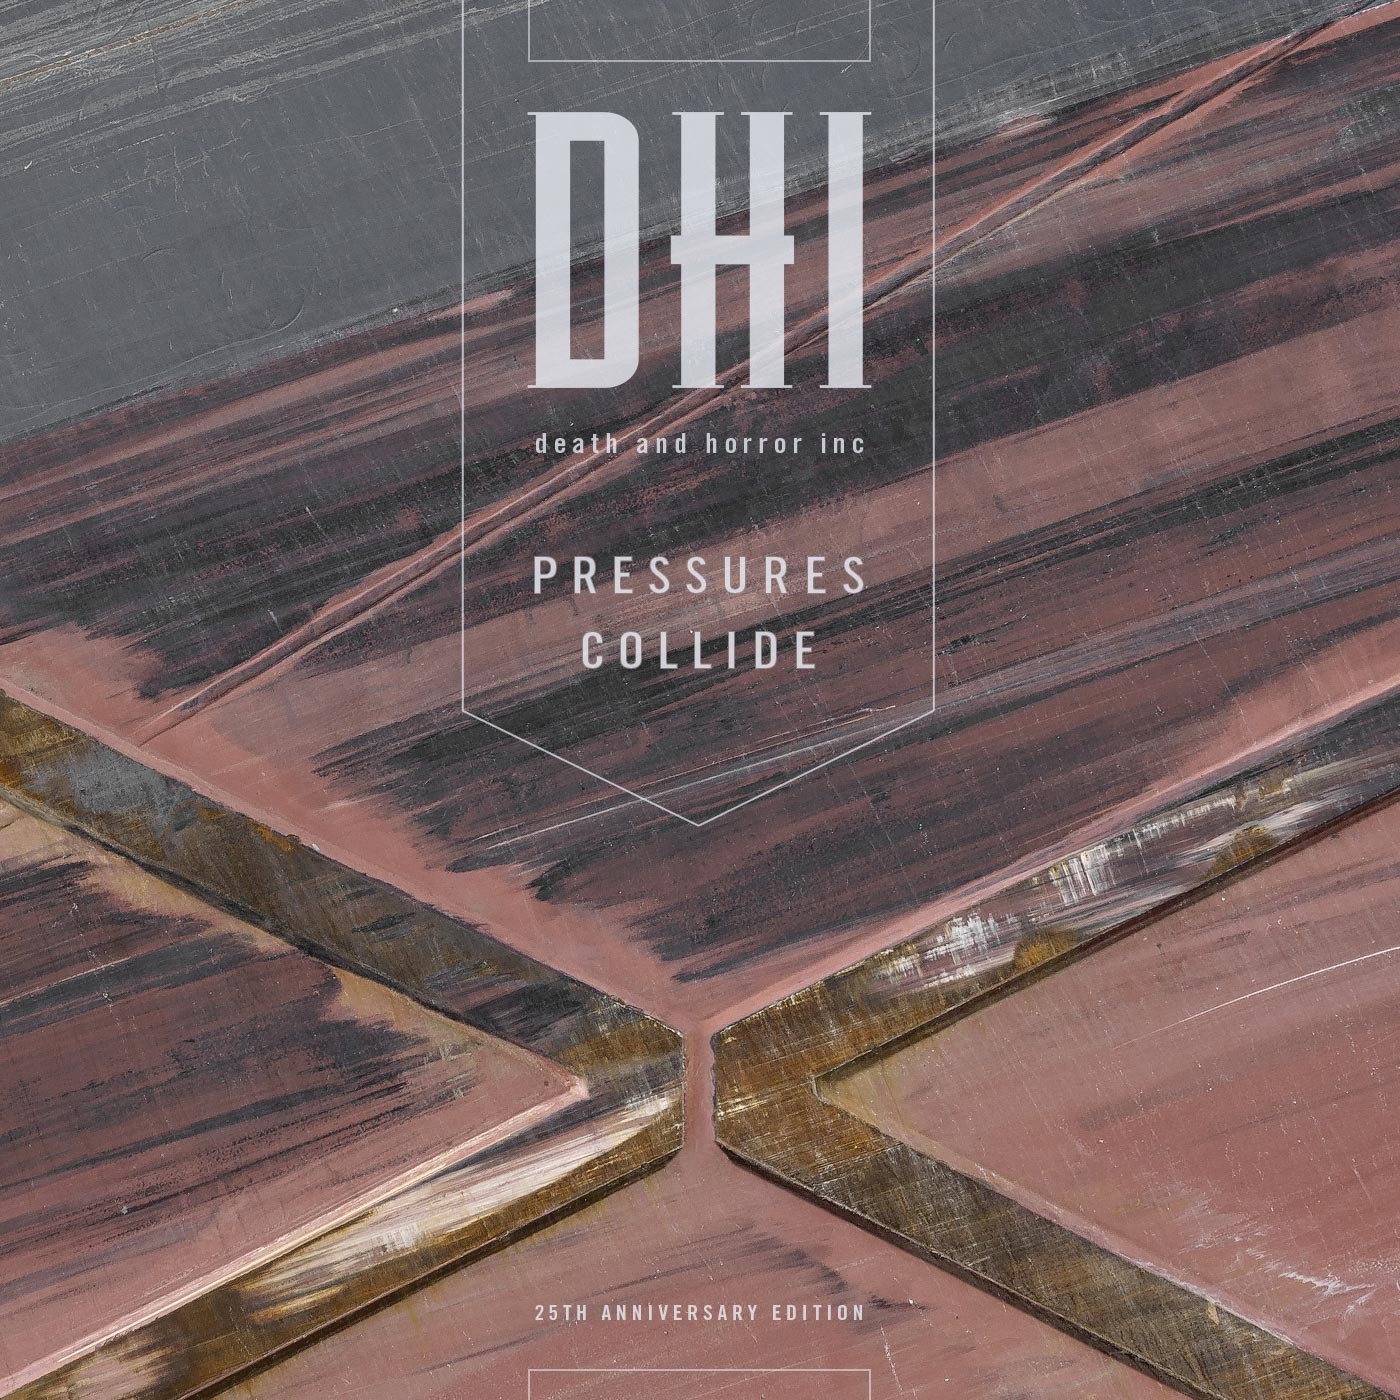 DHI (death and horror inc): Pressures Collide (25th Anniversary Edition) cover.